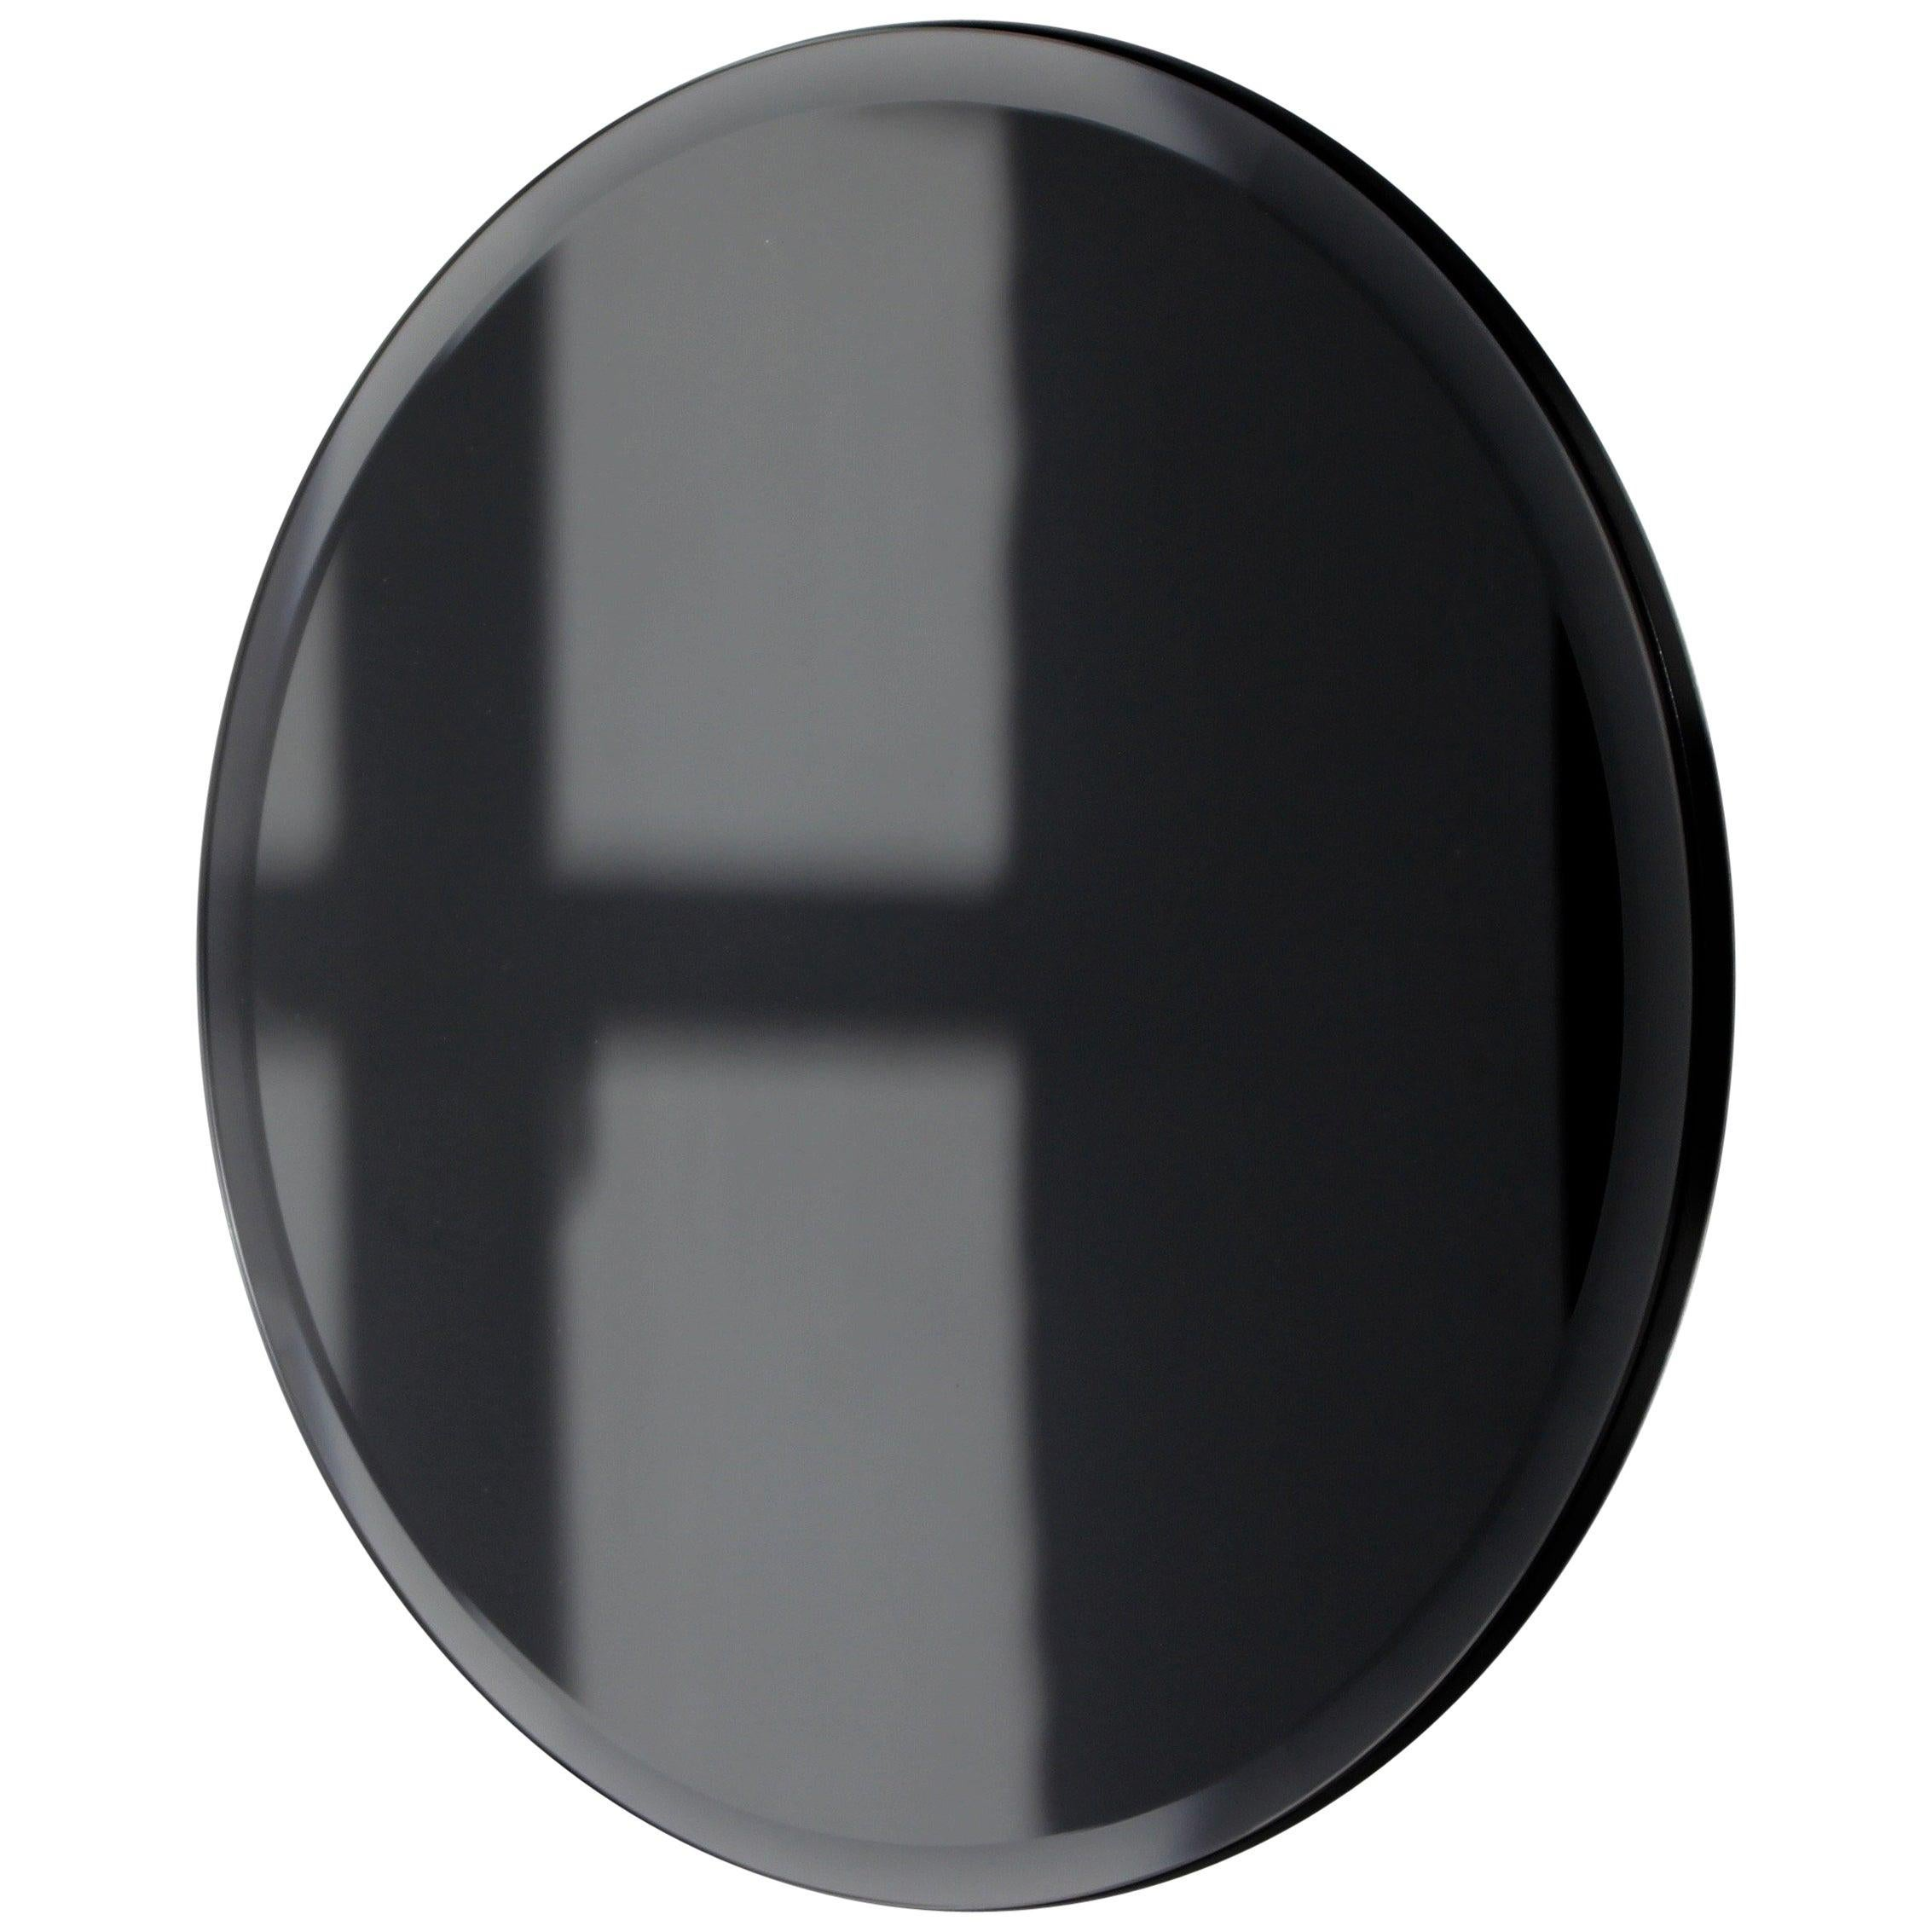 Orbis™ Bevelled Black Tinted Round Frameless Mirror Faux Leather Backing - Large